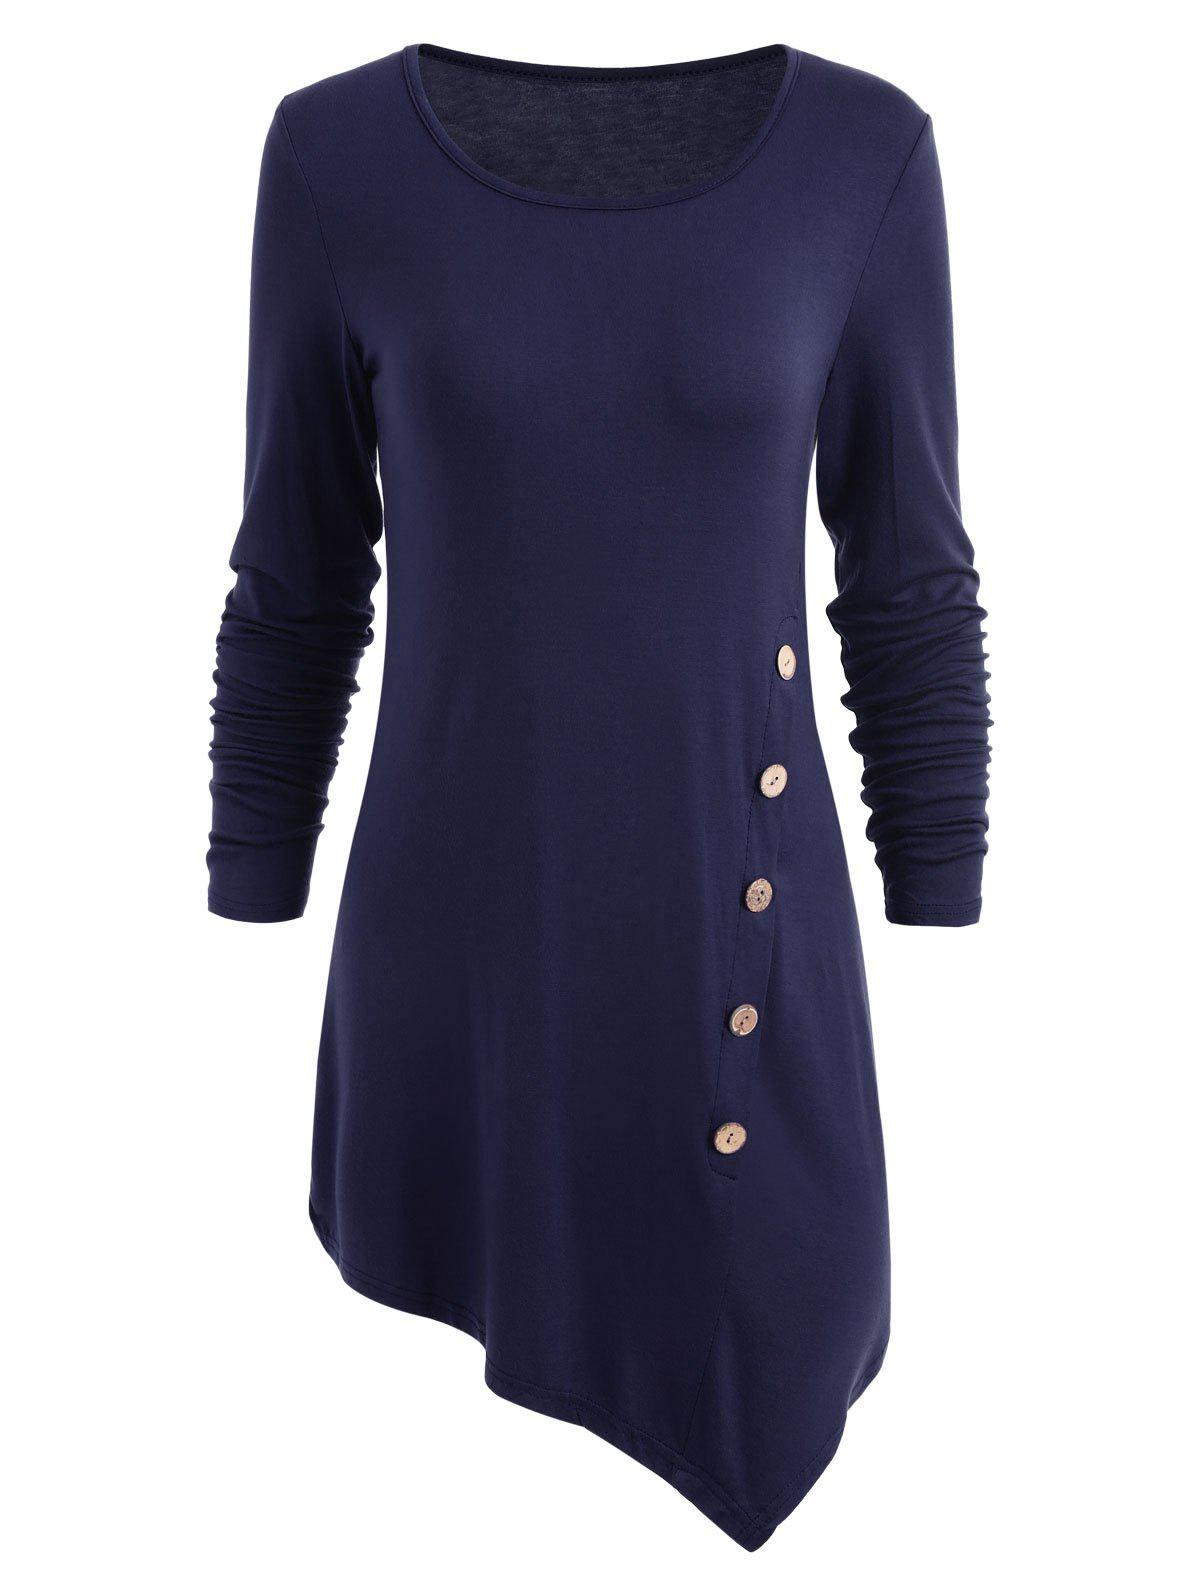 Skew Button Embellished Long Asymmetric BlouseWOMEN<br><br>Size: XL; Color: BLUE; Material: Polyester,Spandex; Shirt Length: Long; Sleeve Length: Full; Collar: Round Neck; Style: Fashion; Embellishment: Button; Pattern Type: Solid; Season: Fall,Spring; Weight: 0.3200kg; Package Contents: 1 x Blouse;